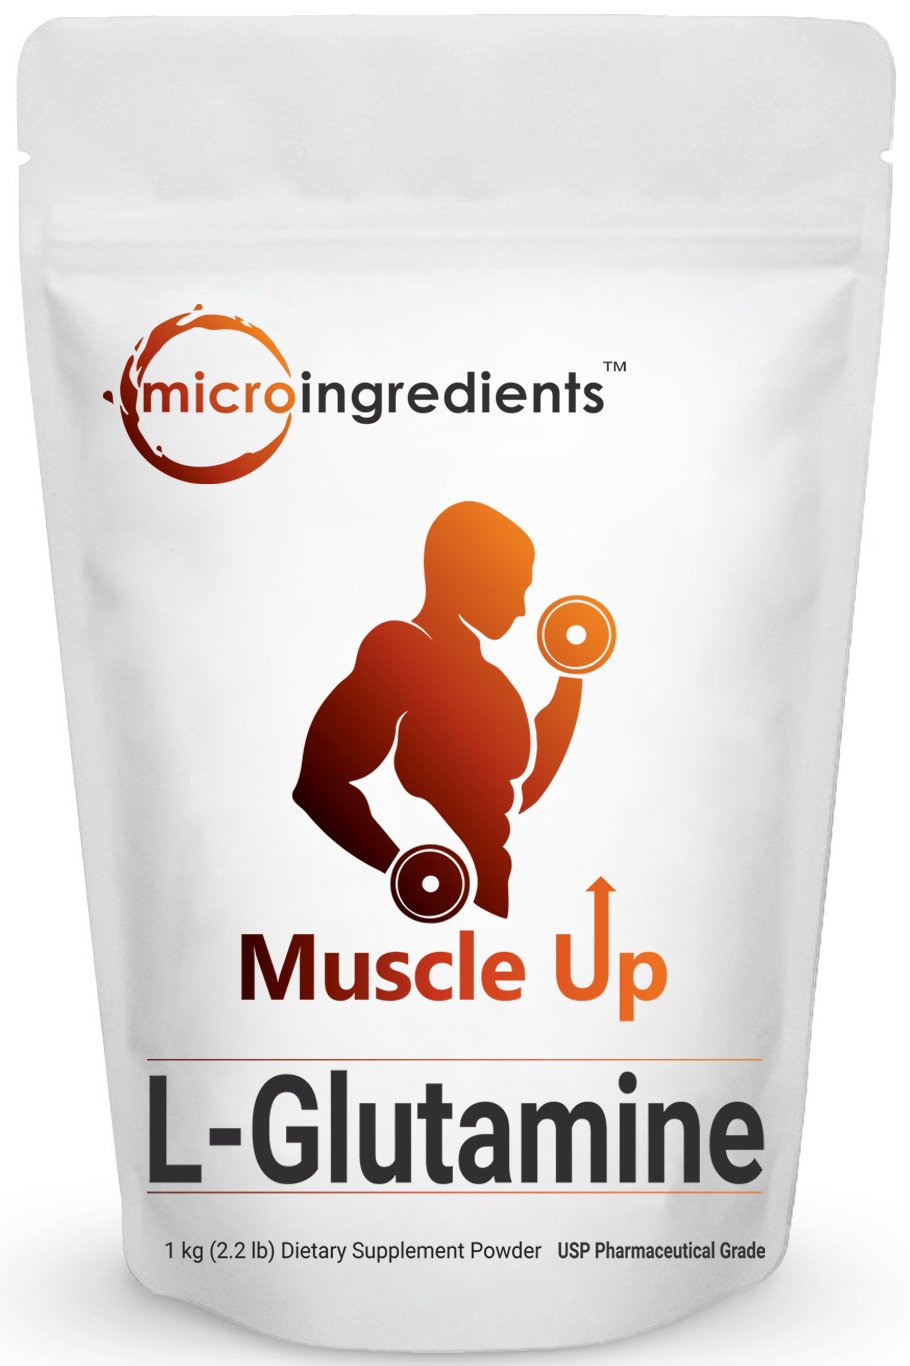 Pure Vegan L Glutamine Powder, 1Kg 2.2 Pounds , Strongly Supports Muscle Mass, Recovery, Protein Synthesis and Muscle Build Up, Sports Nutrition Supplements, No GMOs and Gluten Free.